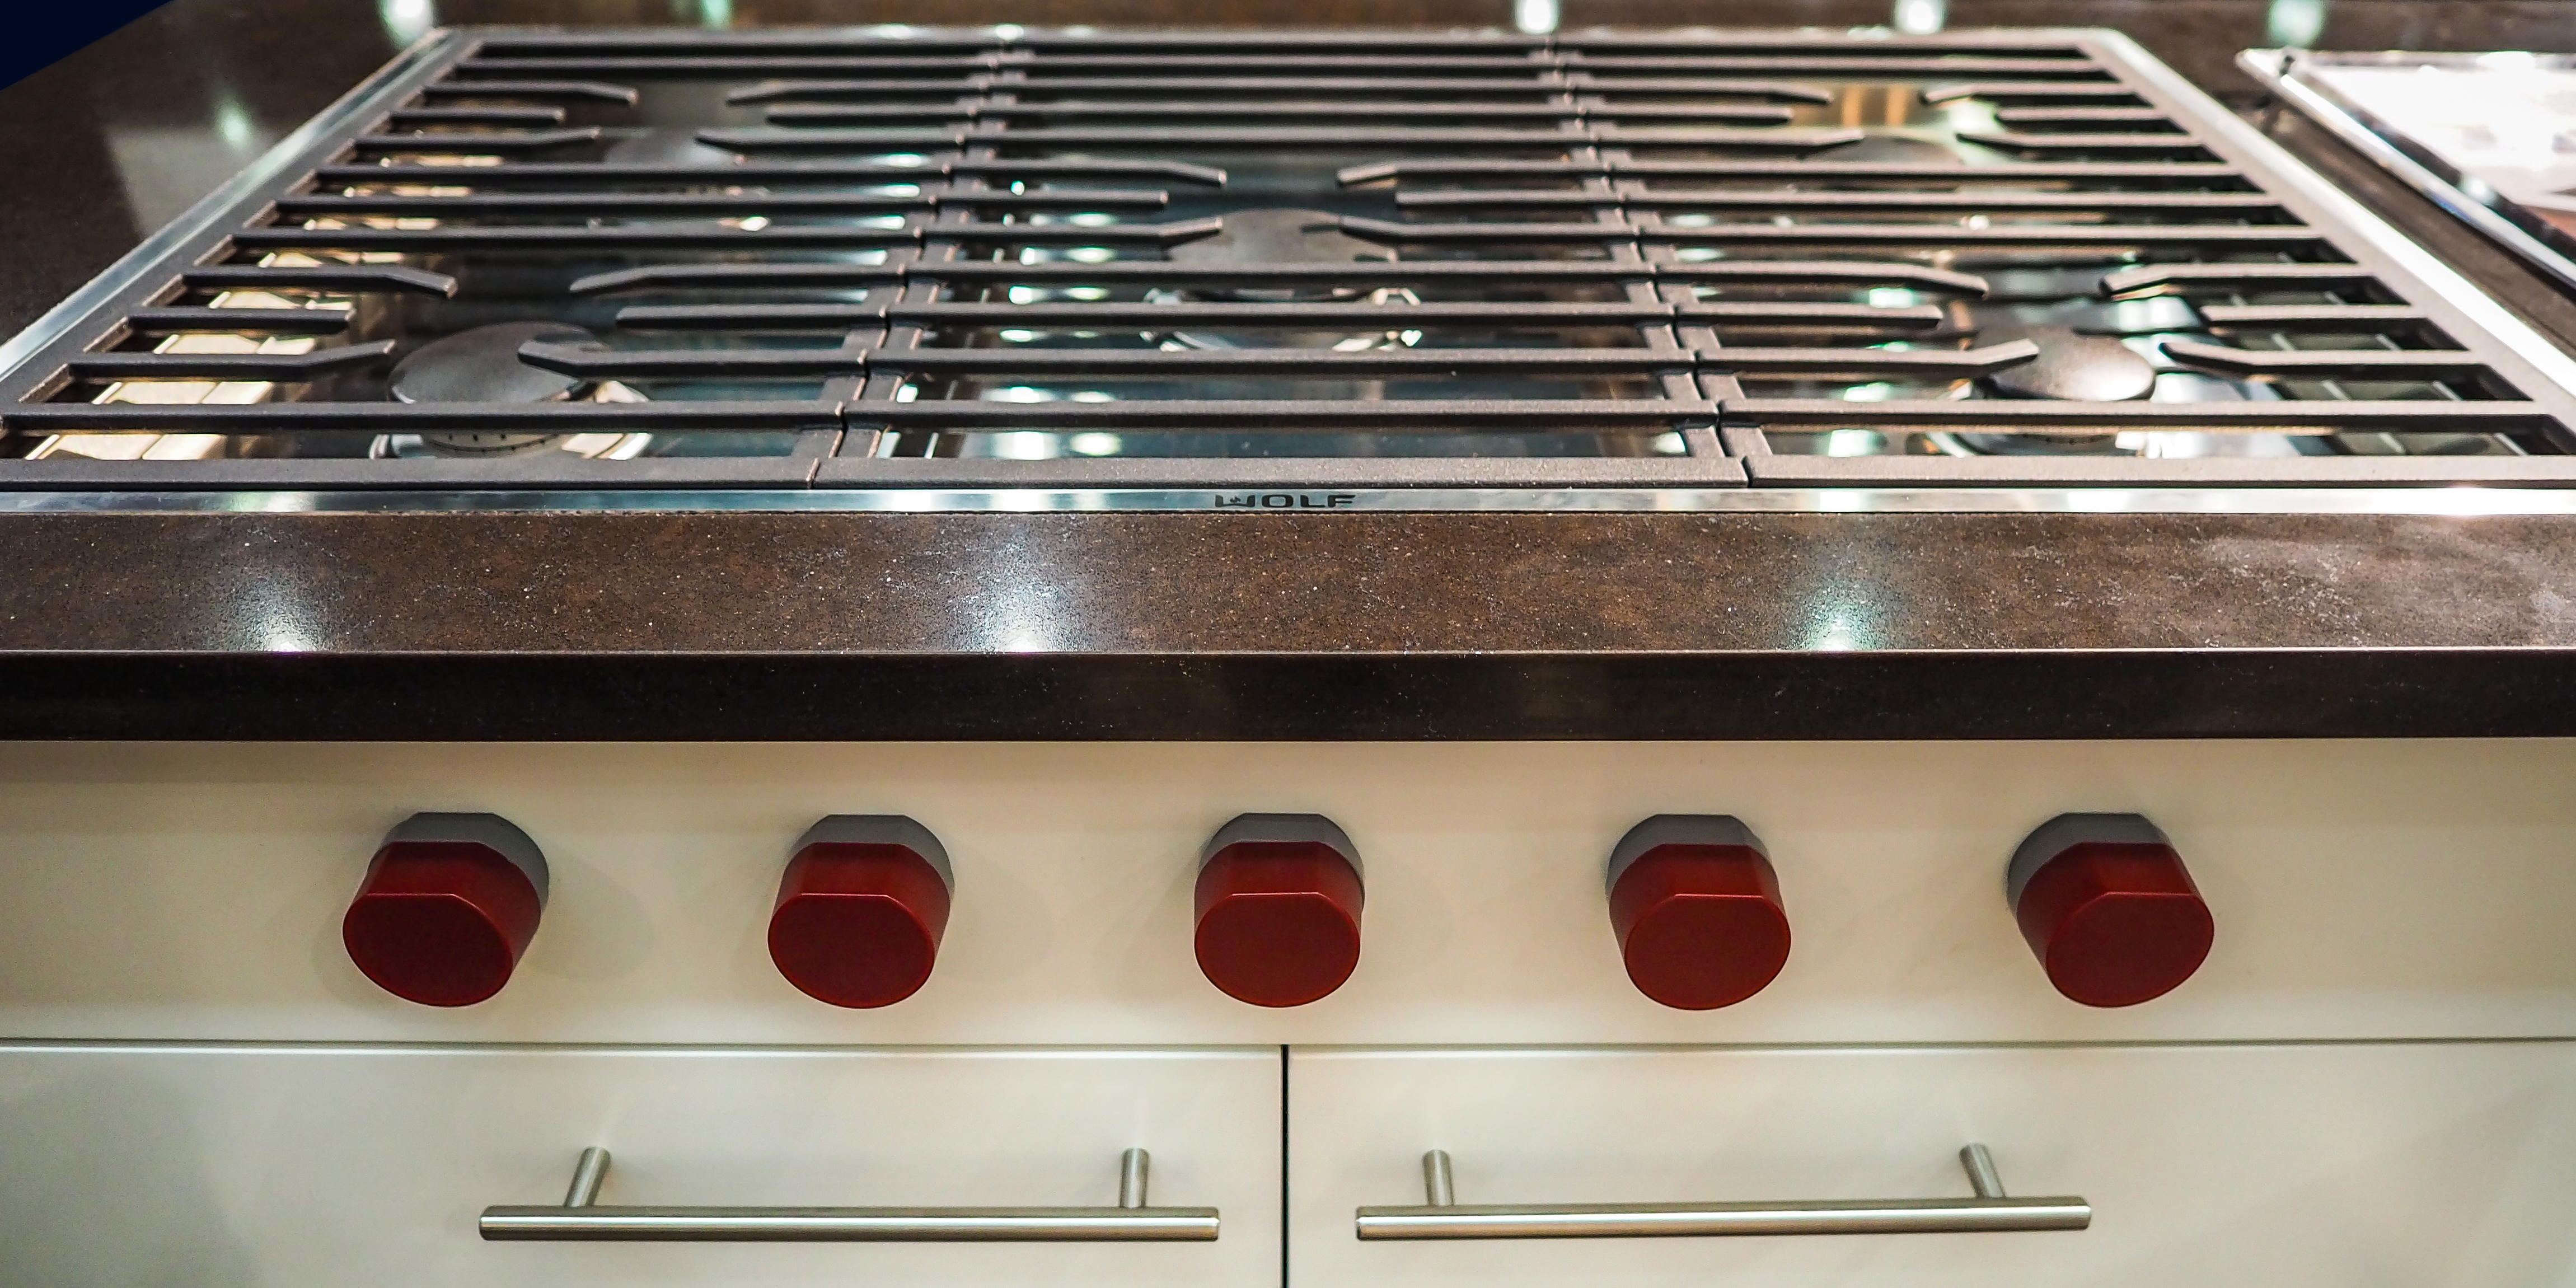 best high end kitchen appliances small counter lamps new wolf cooktop hides its features - reviewed.com ...